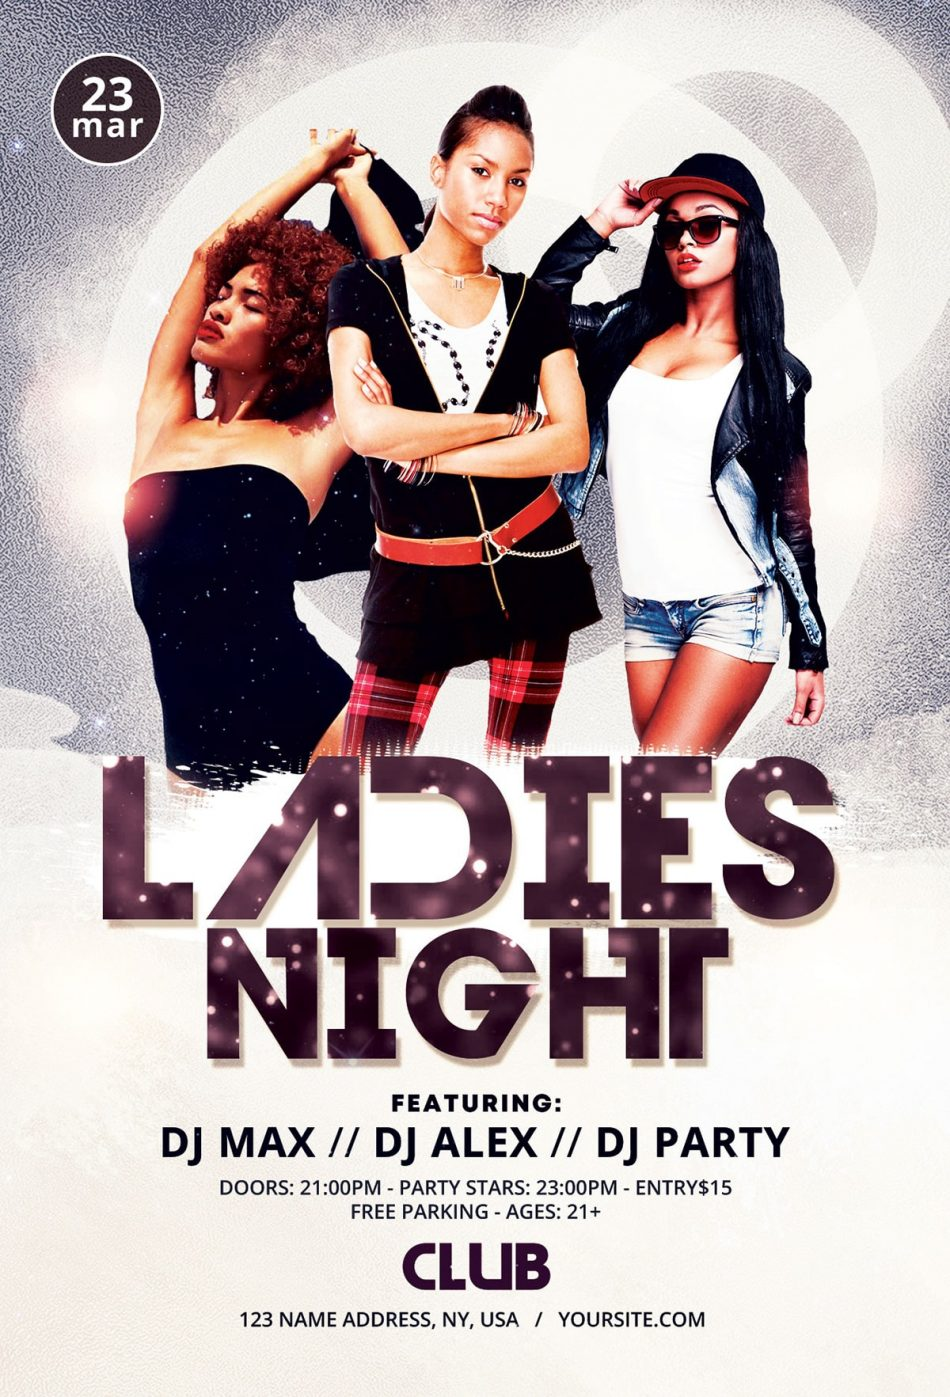 Ladies Night Free Psd Flyer Template Download Psdflyer Co